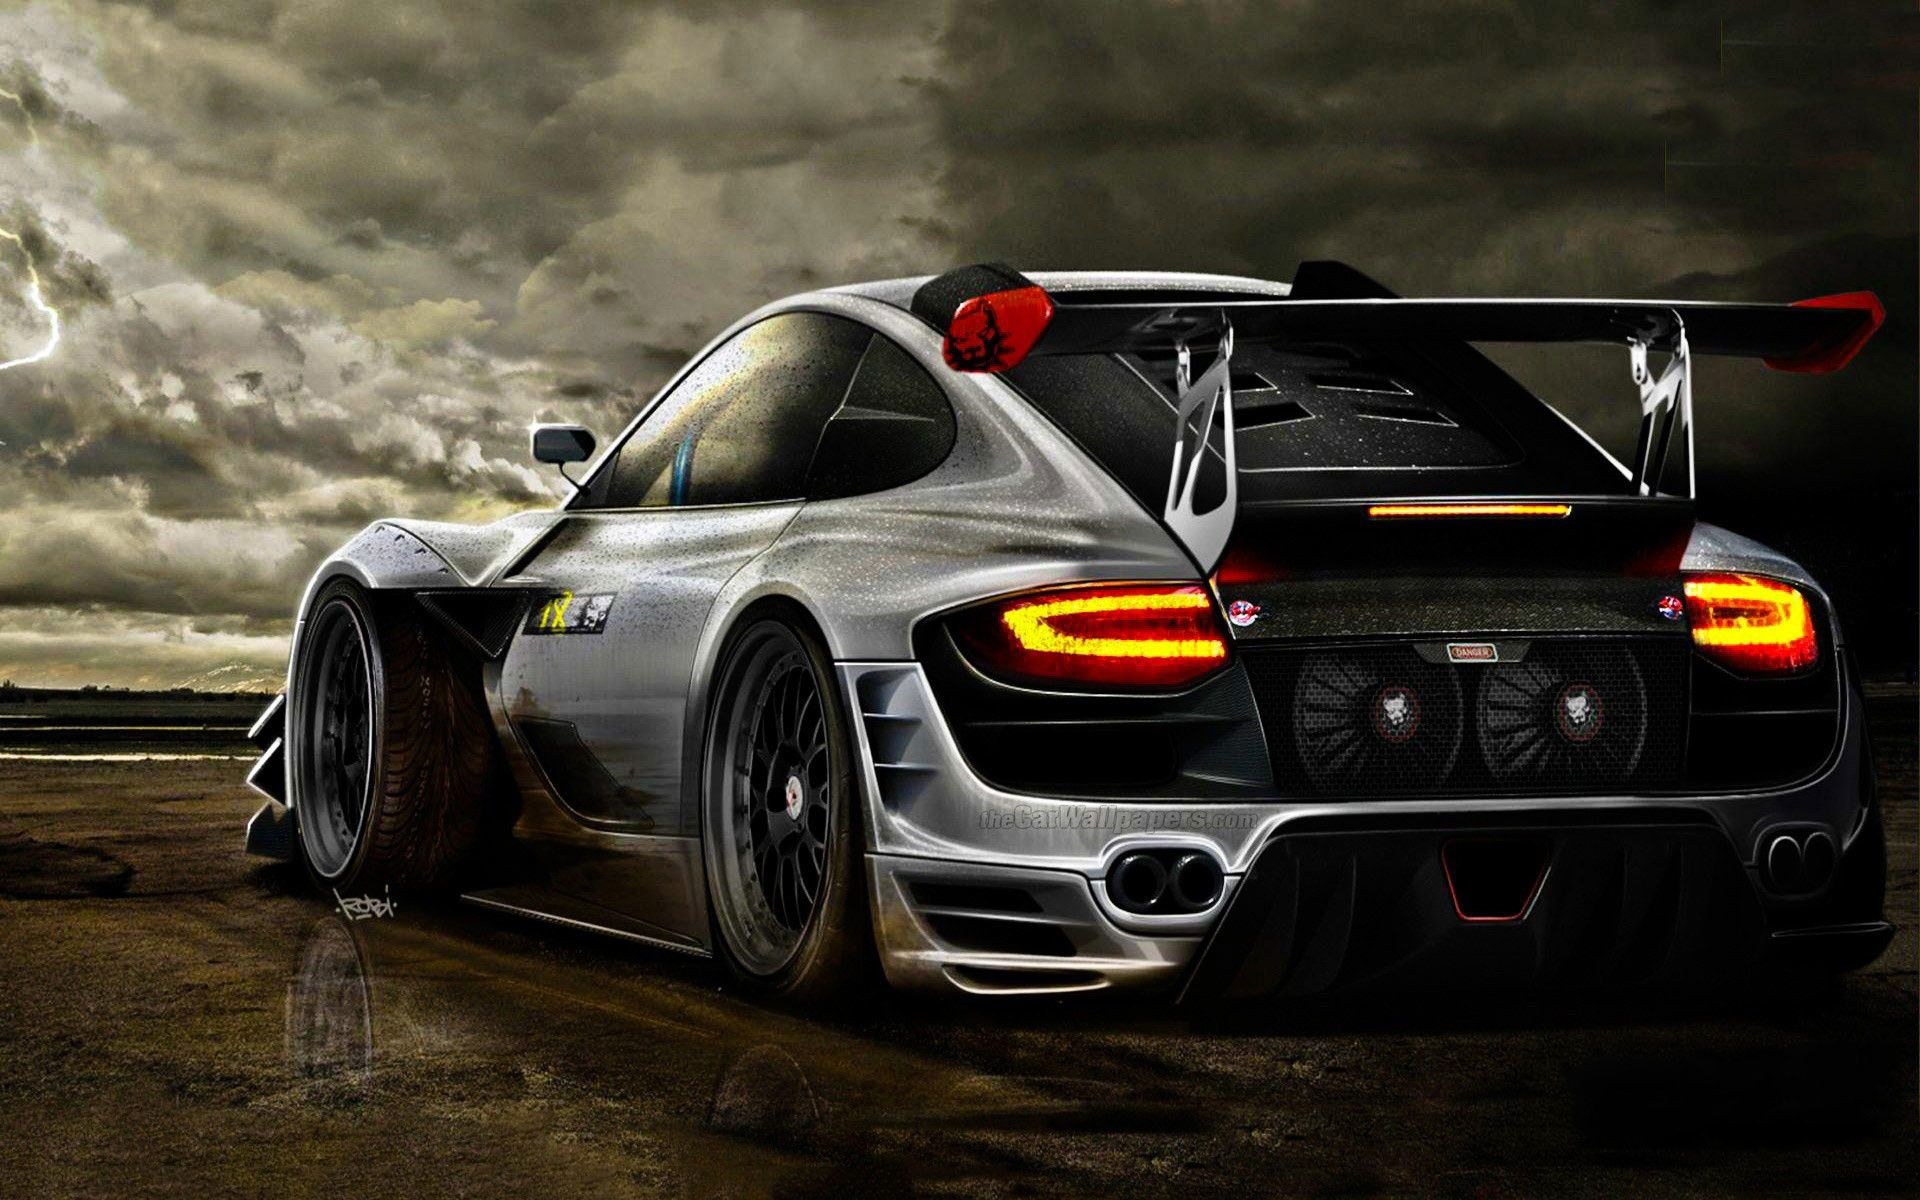 Sports Car 3D Wallpapers - Top Free